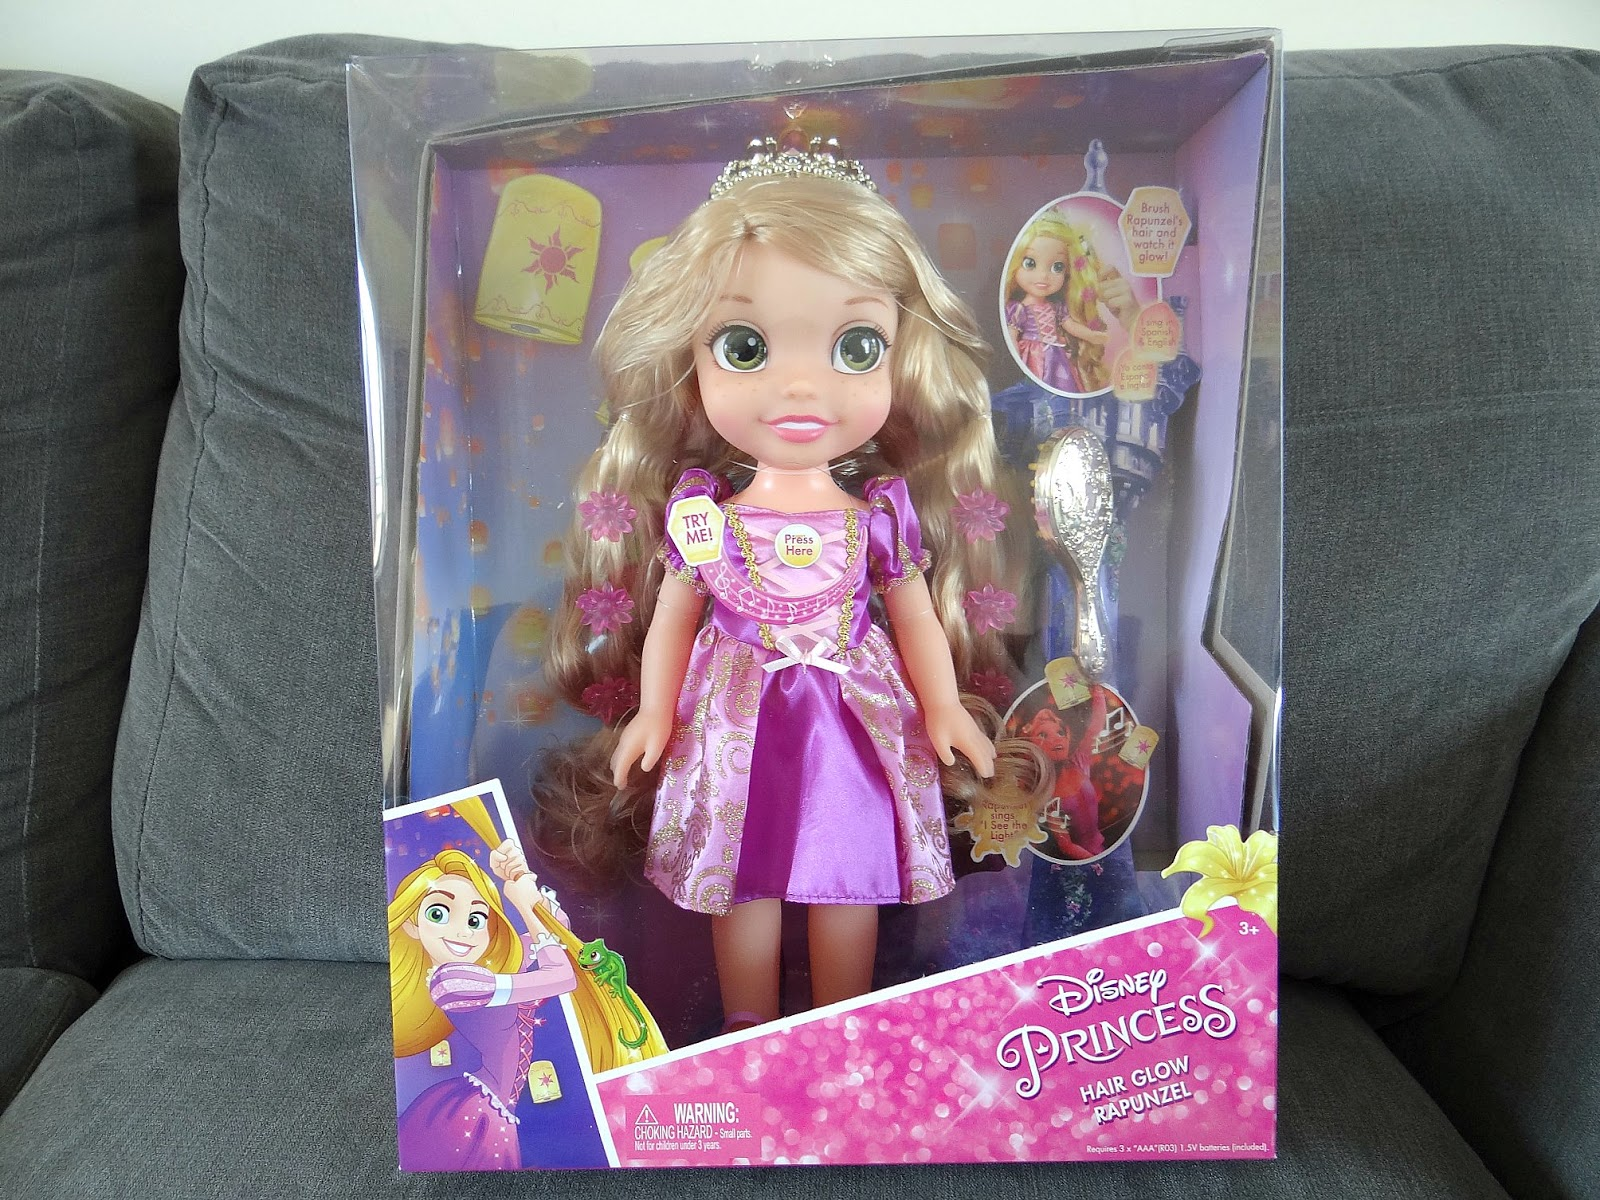 Disney princess, Rapunzel doll, Disney Doll